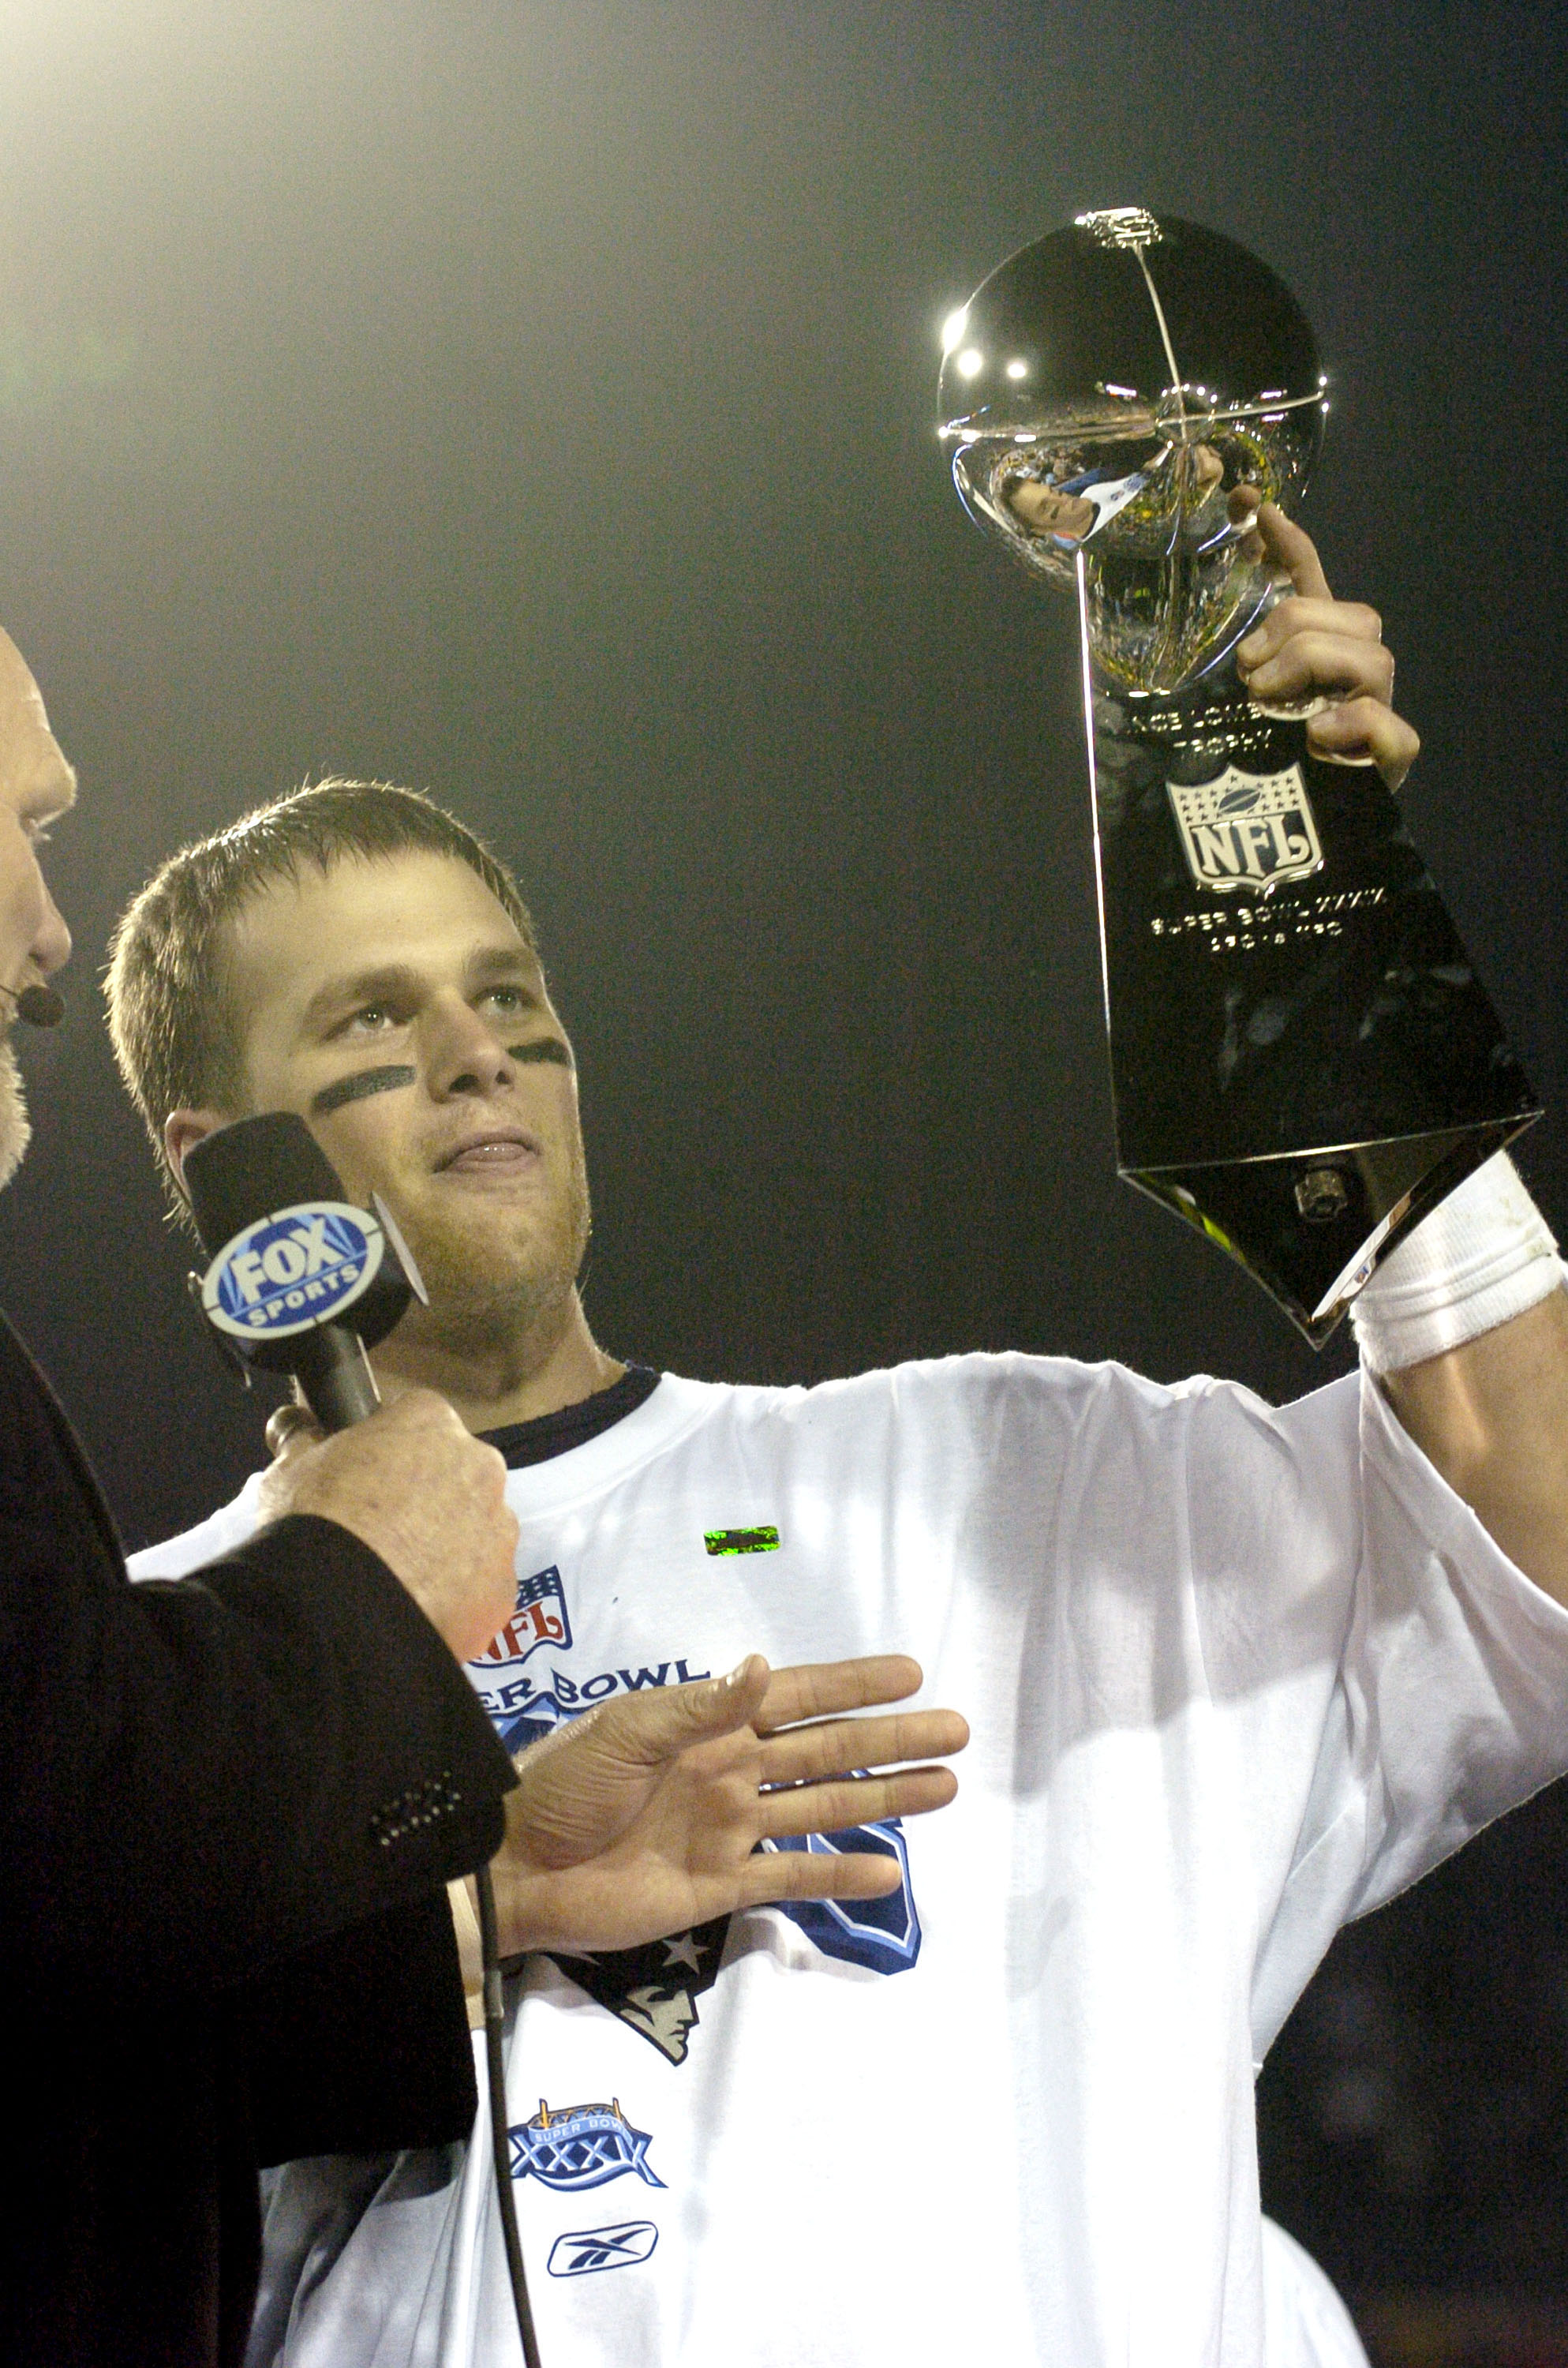 Tom Brady holds the Vince Lombardi Trophy as he stands on the podium after The New England Patriots defeated The Philadelphia Eagles in Super Bowl XXXIX at Alltel Staduim in Jacksonville, Florida. (Photo by A. Messerschmidt/Getty Images)